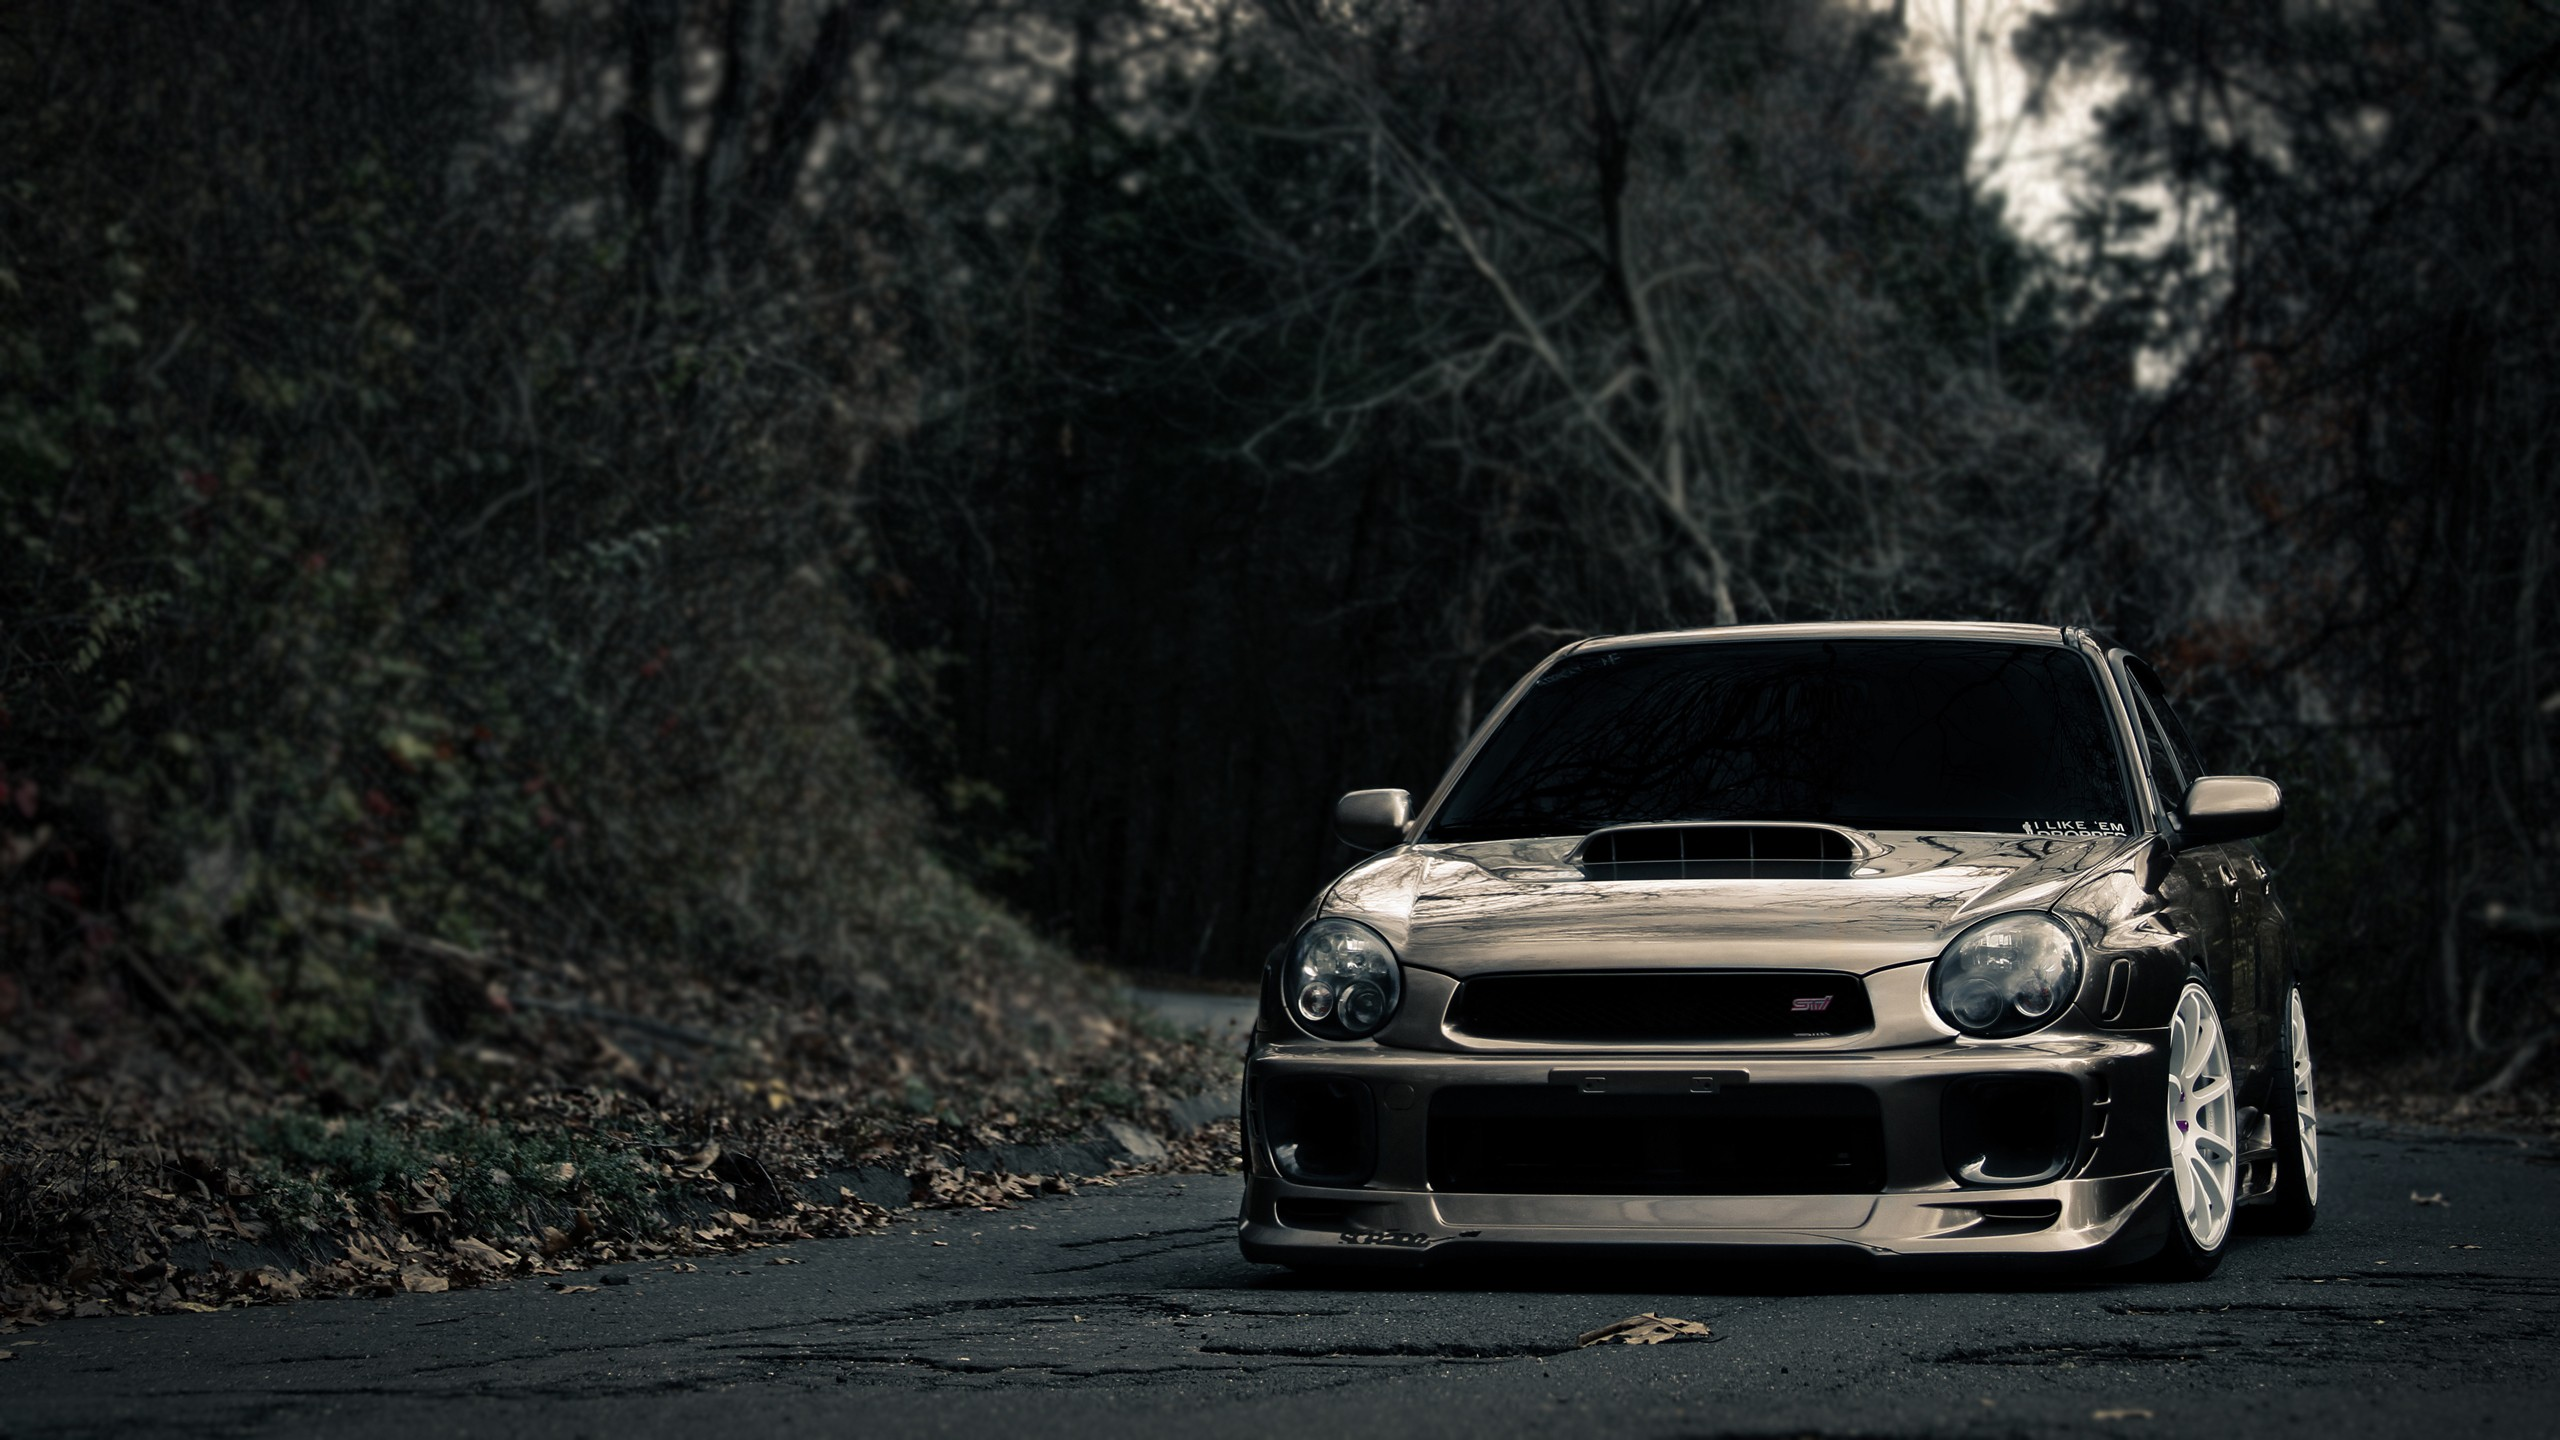 Just An Amazing Bugeye Subaru Wallpaper I M Using This One Now